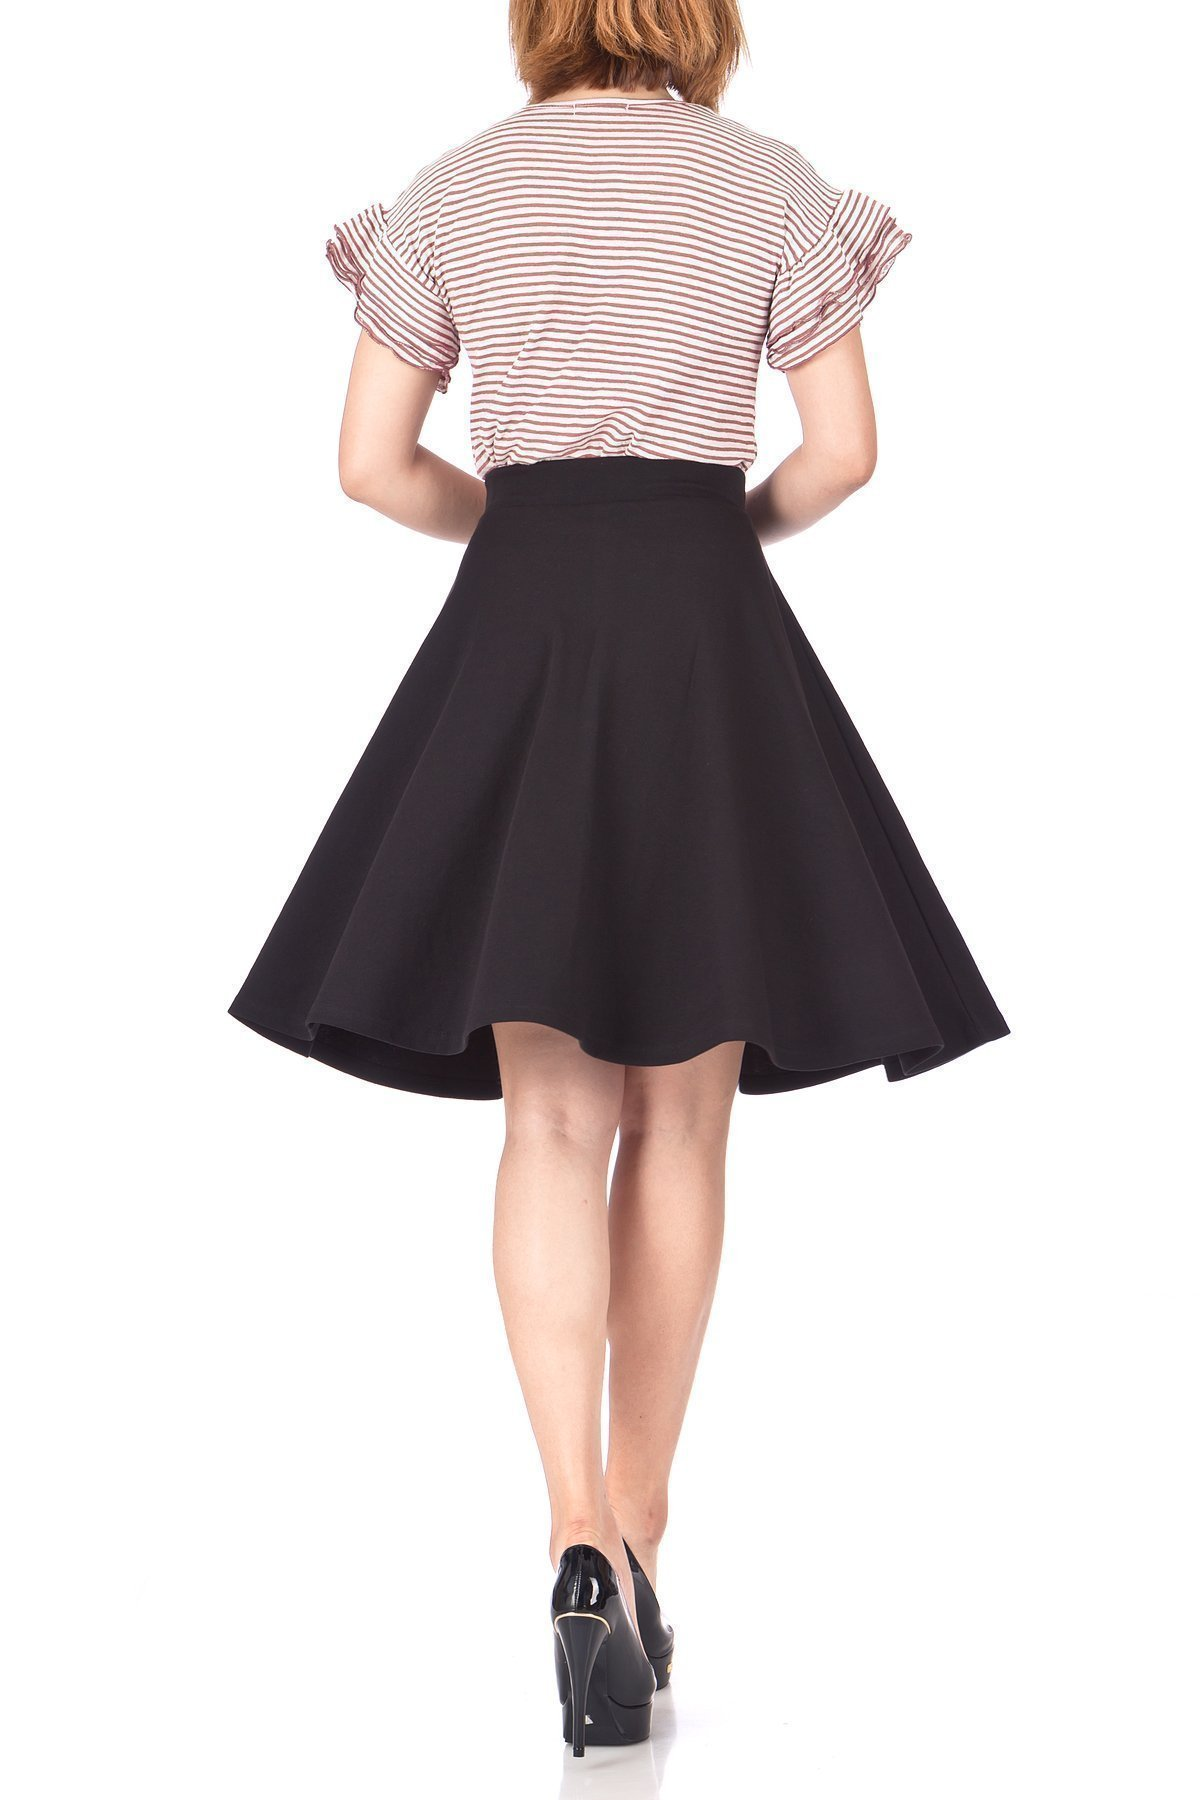 Comfy and Lovely Cotton Blend Versatile Casual Office High Waist A line Full Flared Swing Circle Skater Knee Length Skirt Black 05